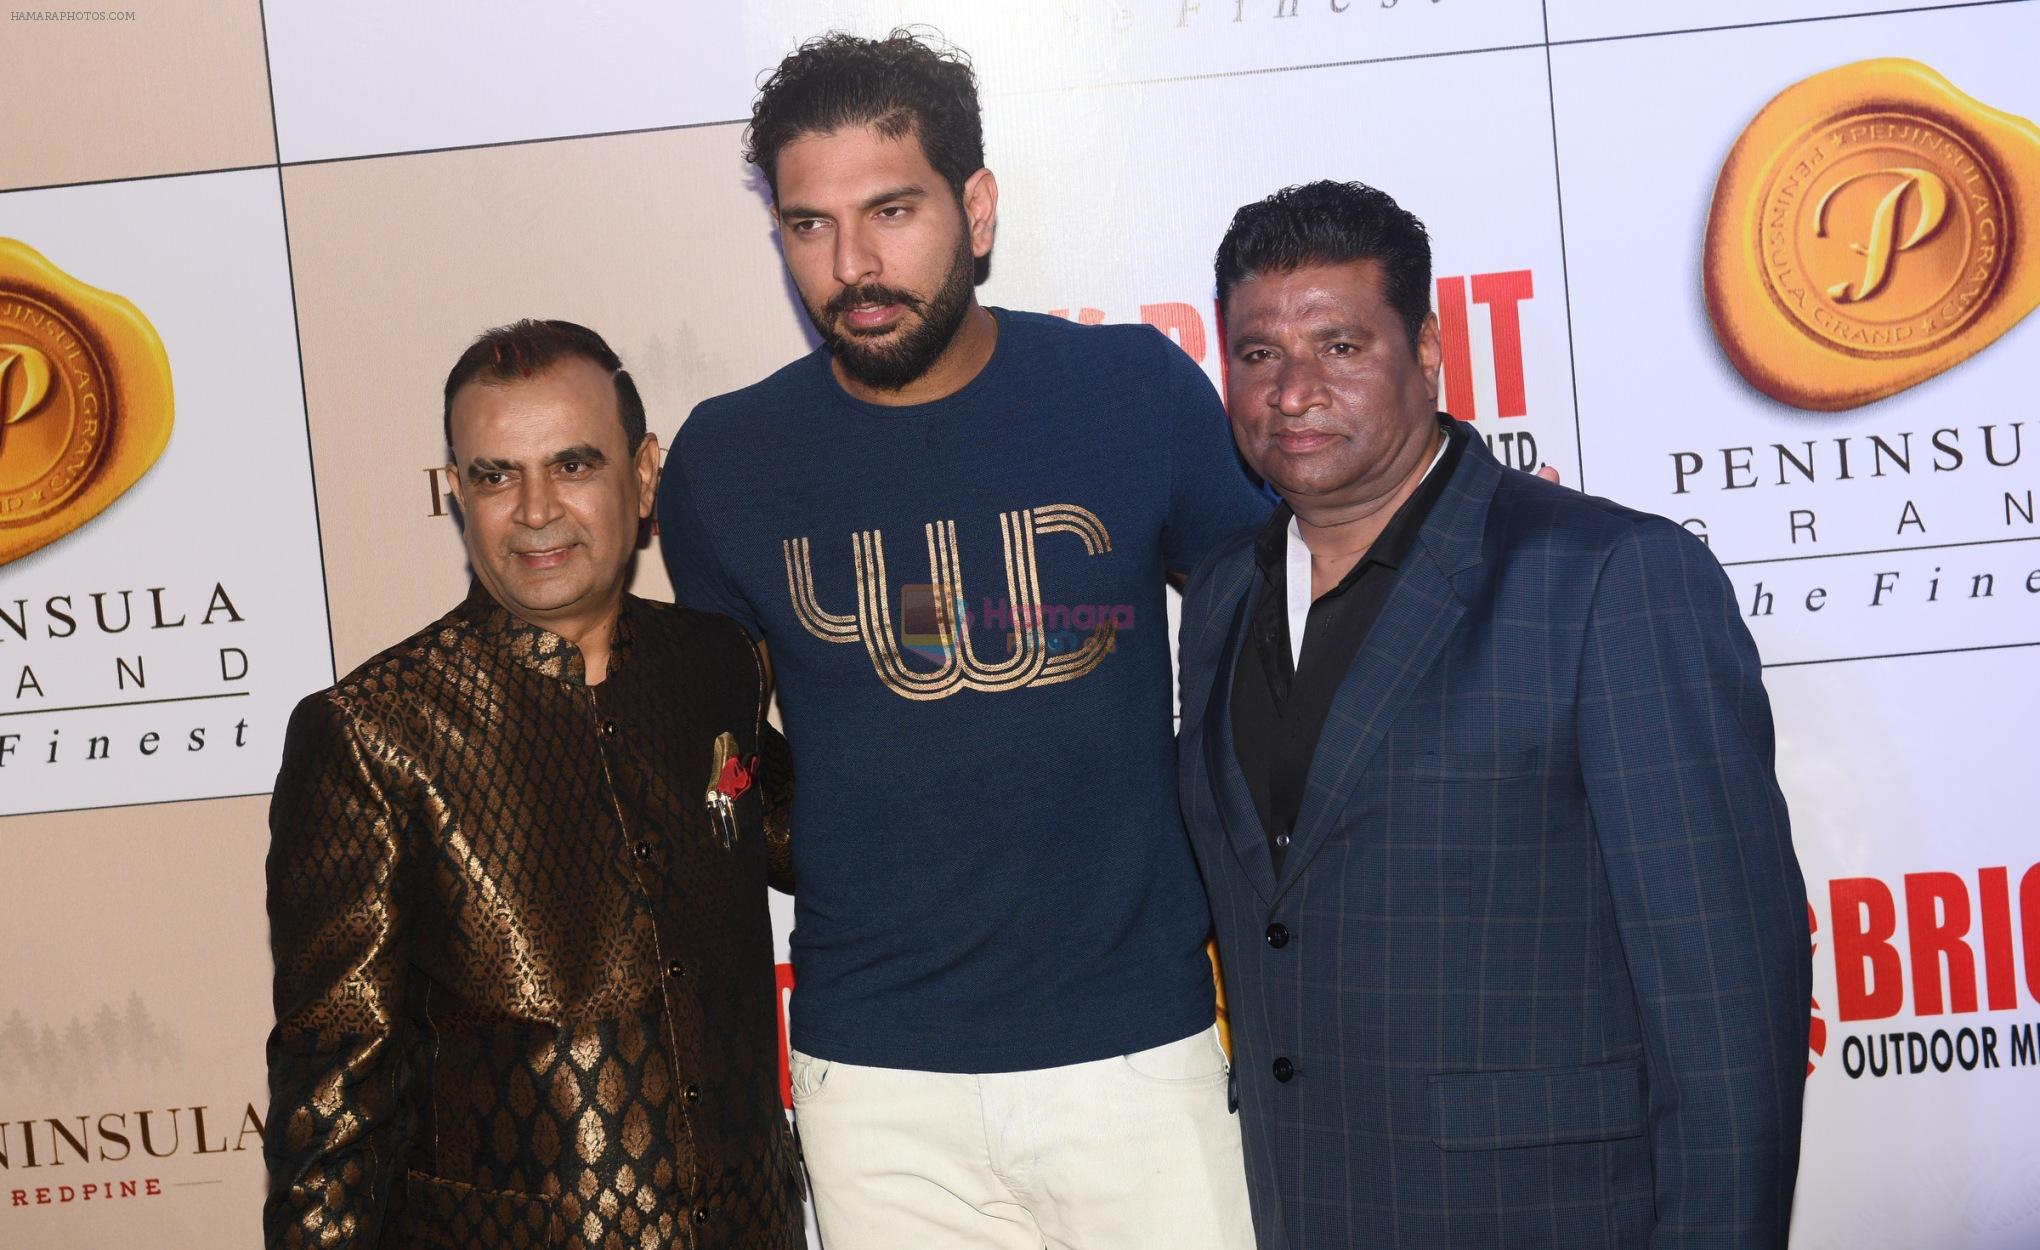 Yogesh Lakhani with Yuvraj Singh and Satish Shetty at 3rd Bright Awards 2017 in Mumbai on 6th Feb 2017